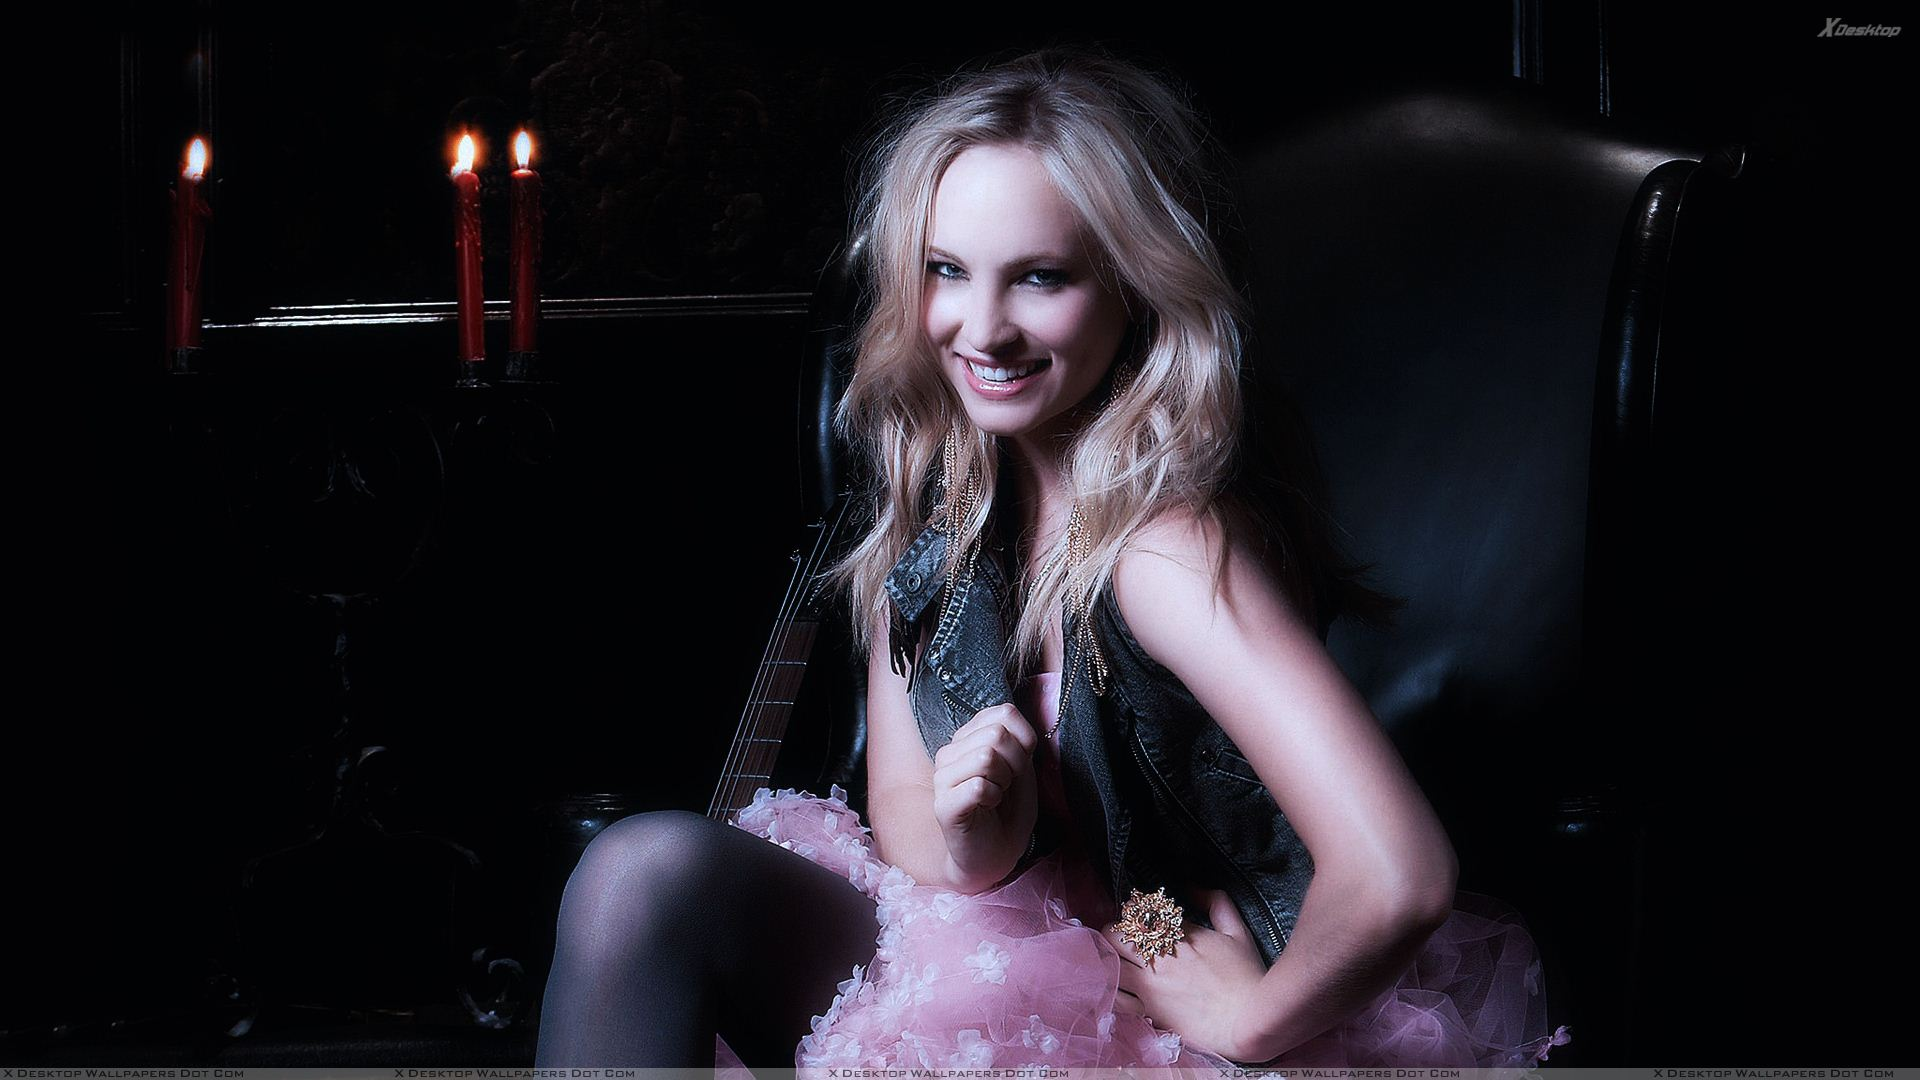 1920x1080 - Candice Accola Wallpapers 31